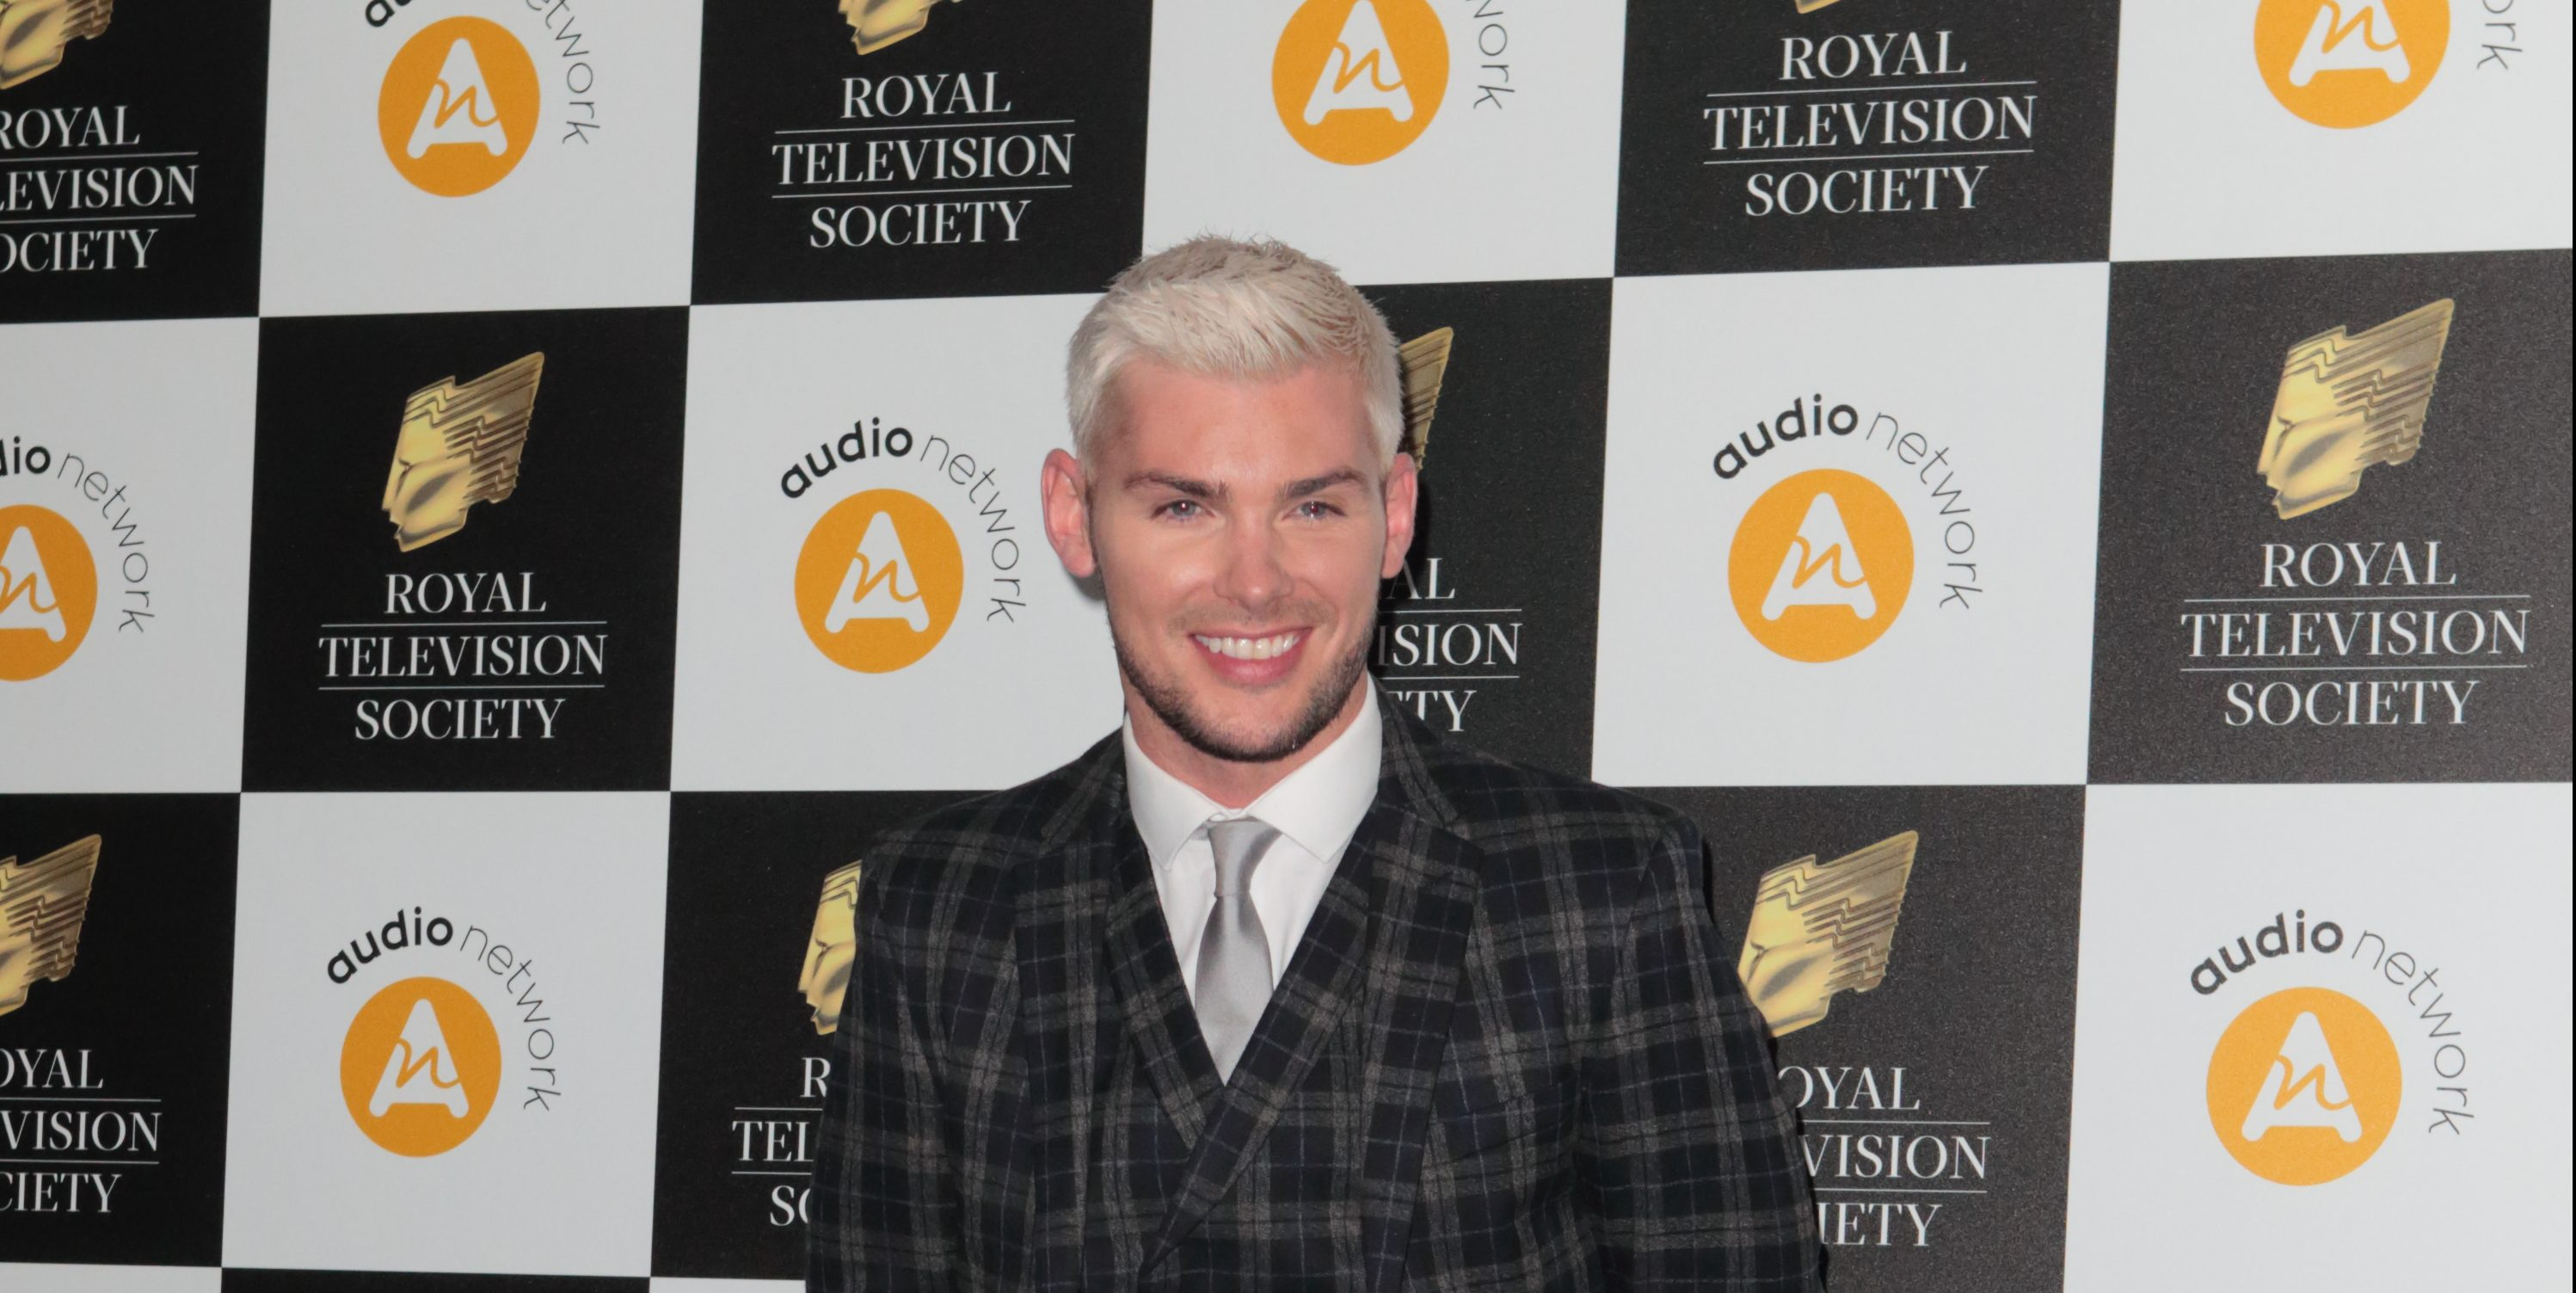 Hollyoaks' Kieron Richardson reveals dramatic hair transformation